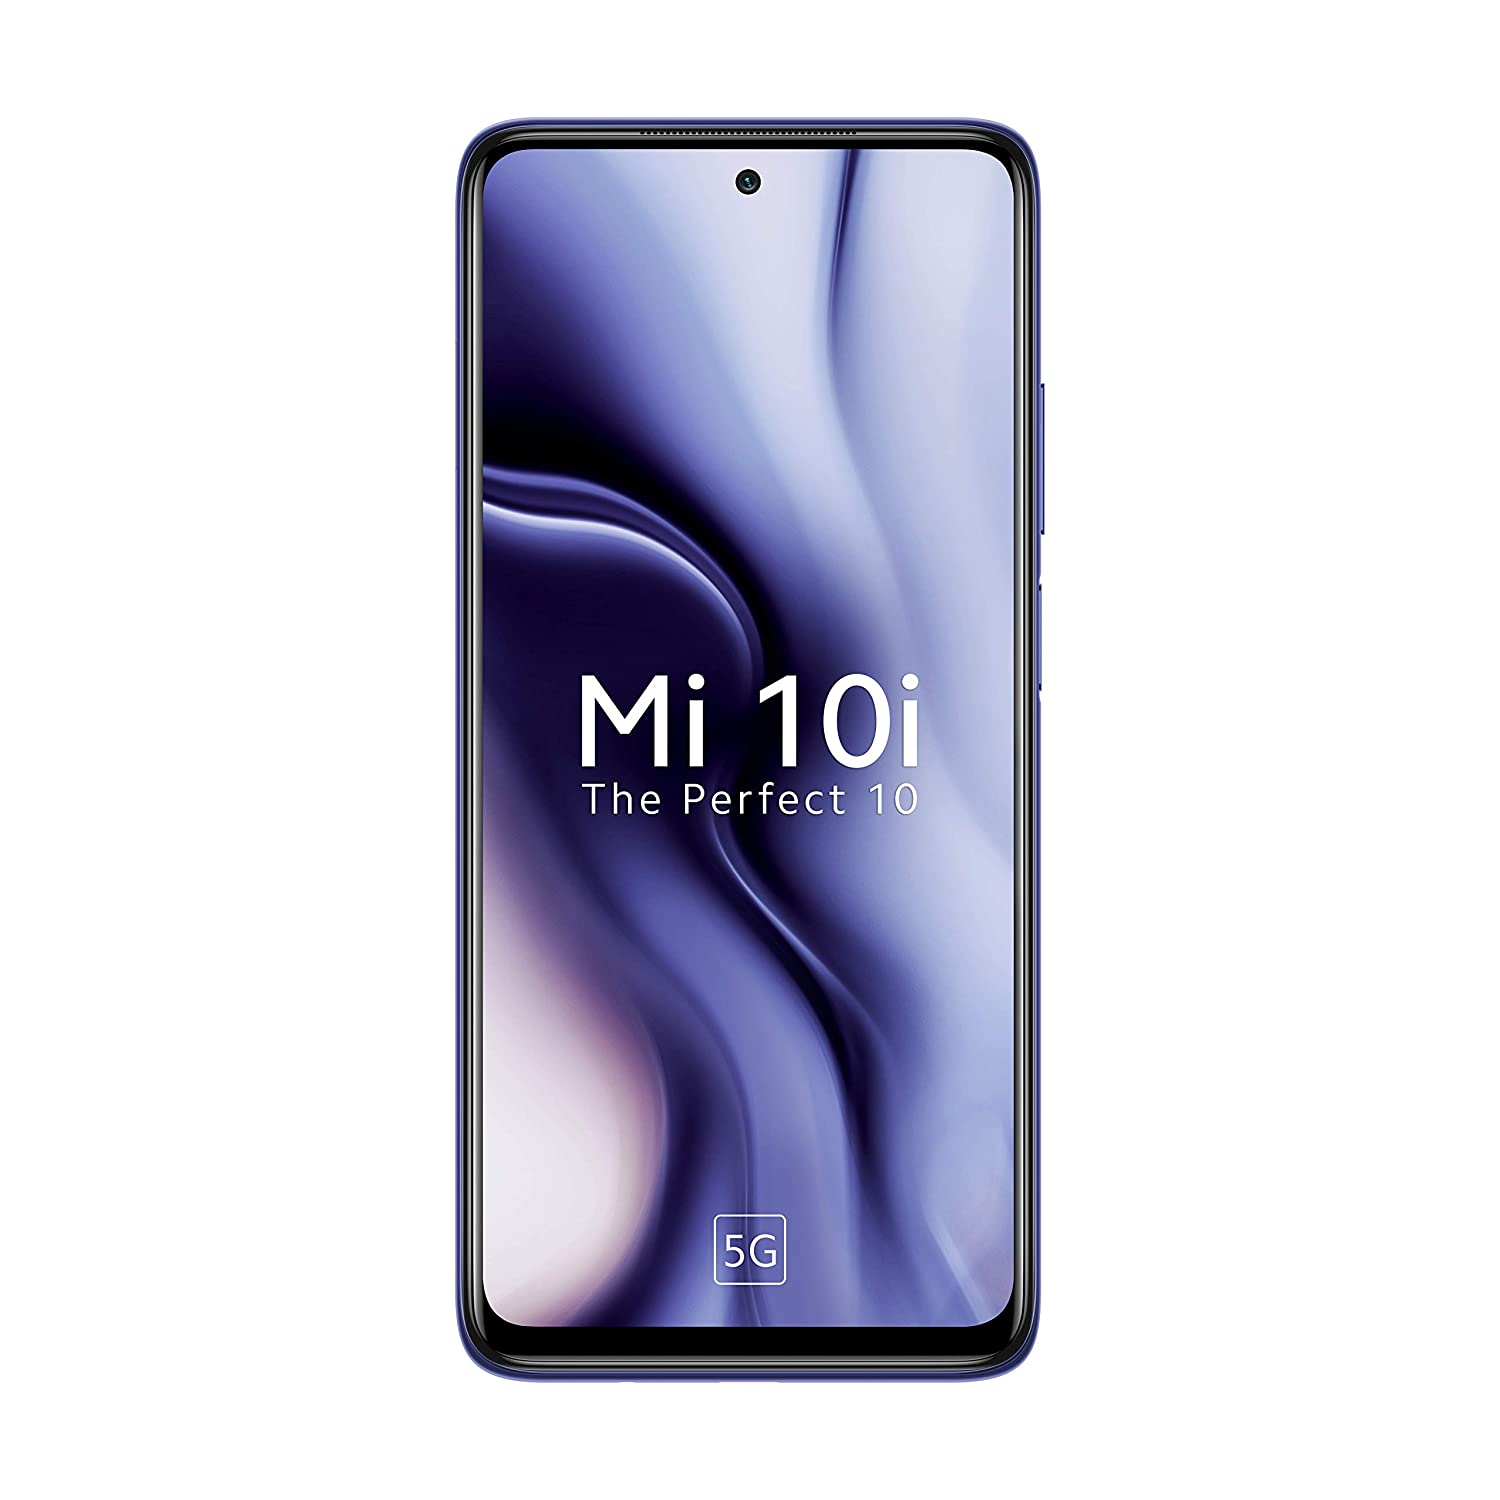 Mi 10i 5G (Atlantic Blue, 6GB RAM, 128GB Storage) - 108MP Quad Camera | Snapdragon 750G | Extra INR 1000 Off with Coupons (Limited Period)